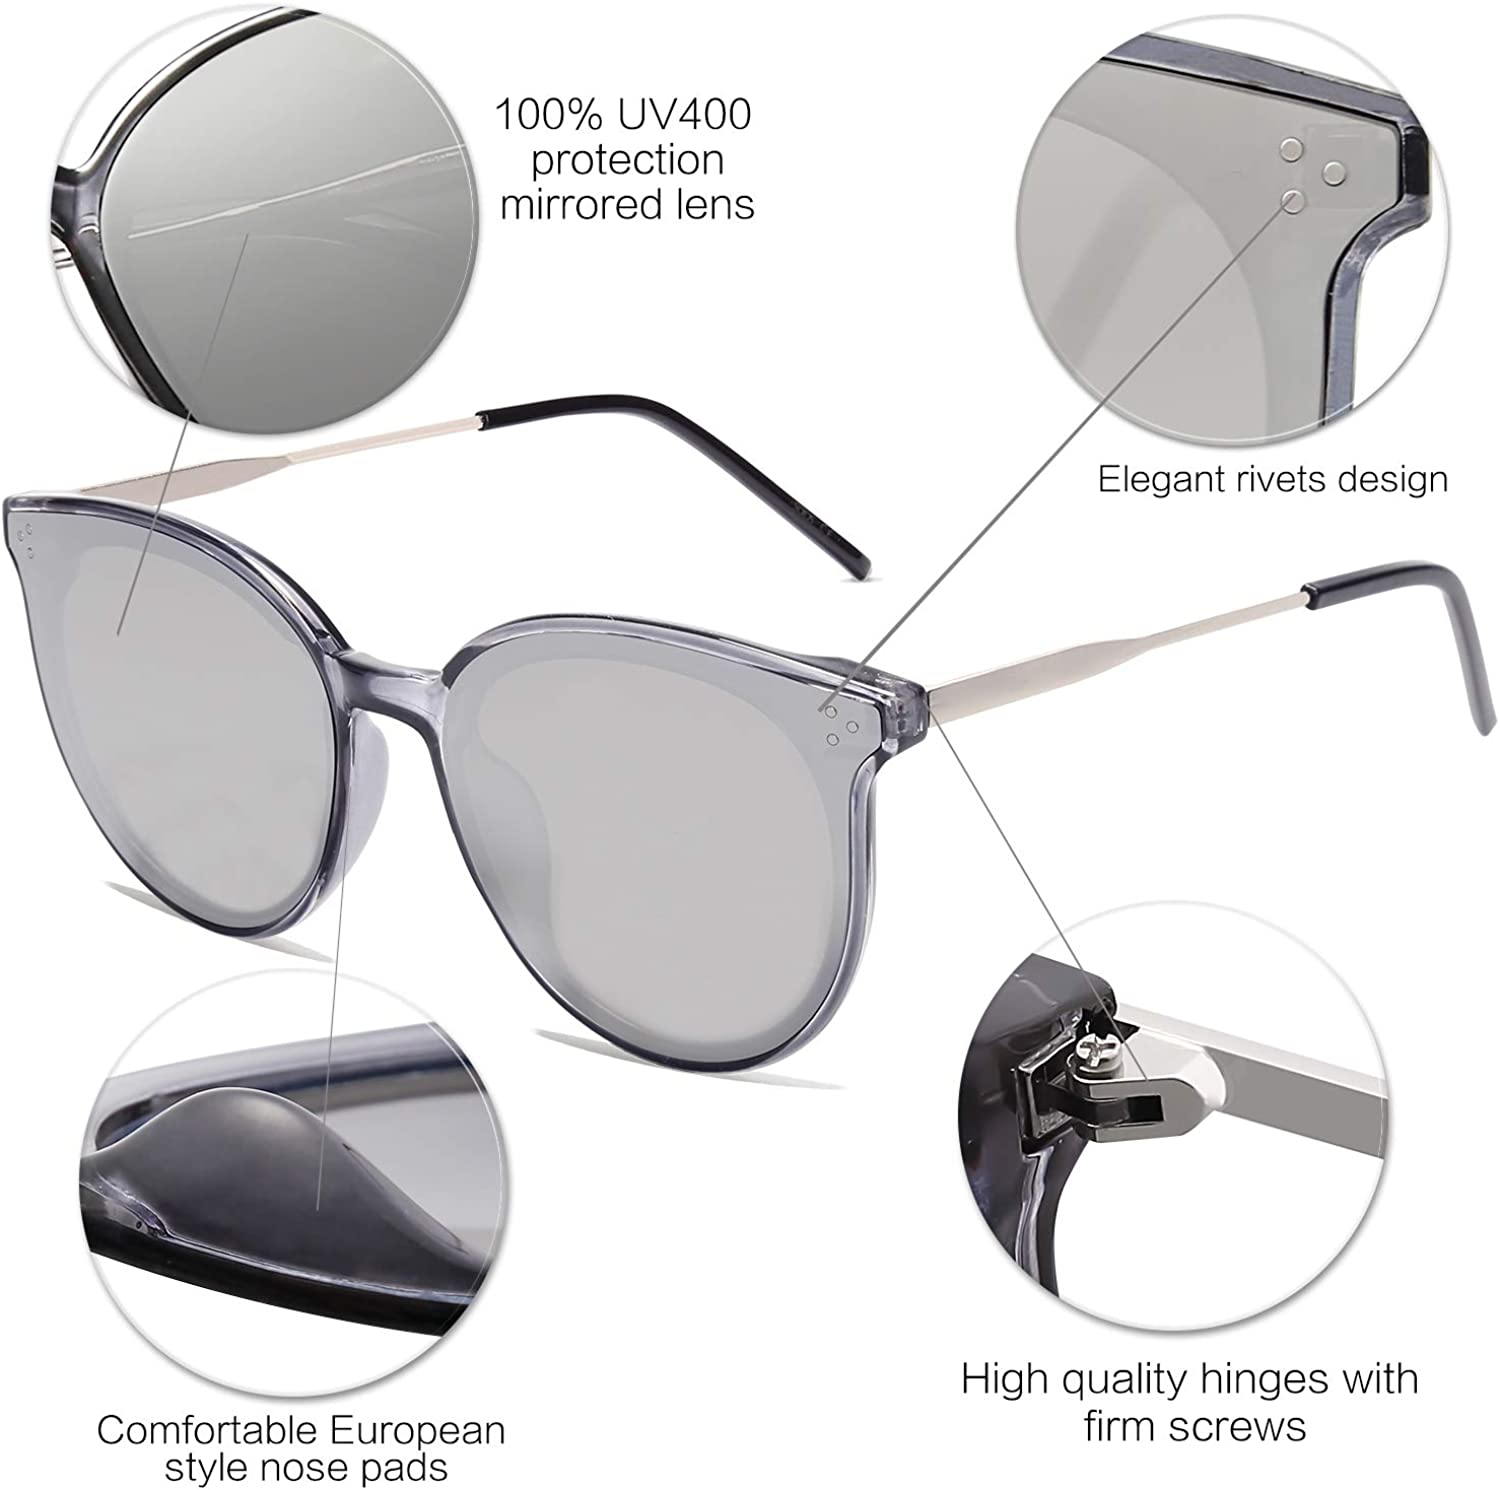 SOJOS Classic Retro Round Oversized Sunglasses for Women with Rivets DOLPHIN SJ2068